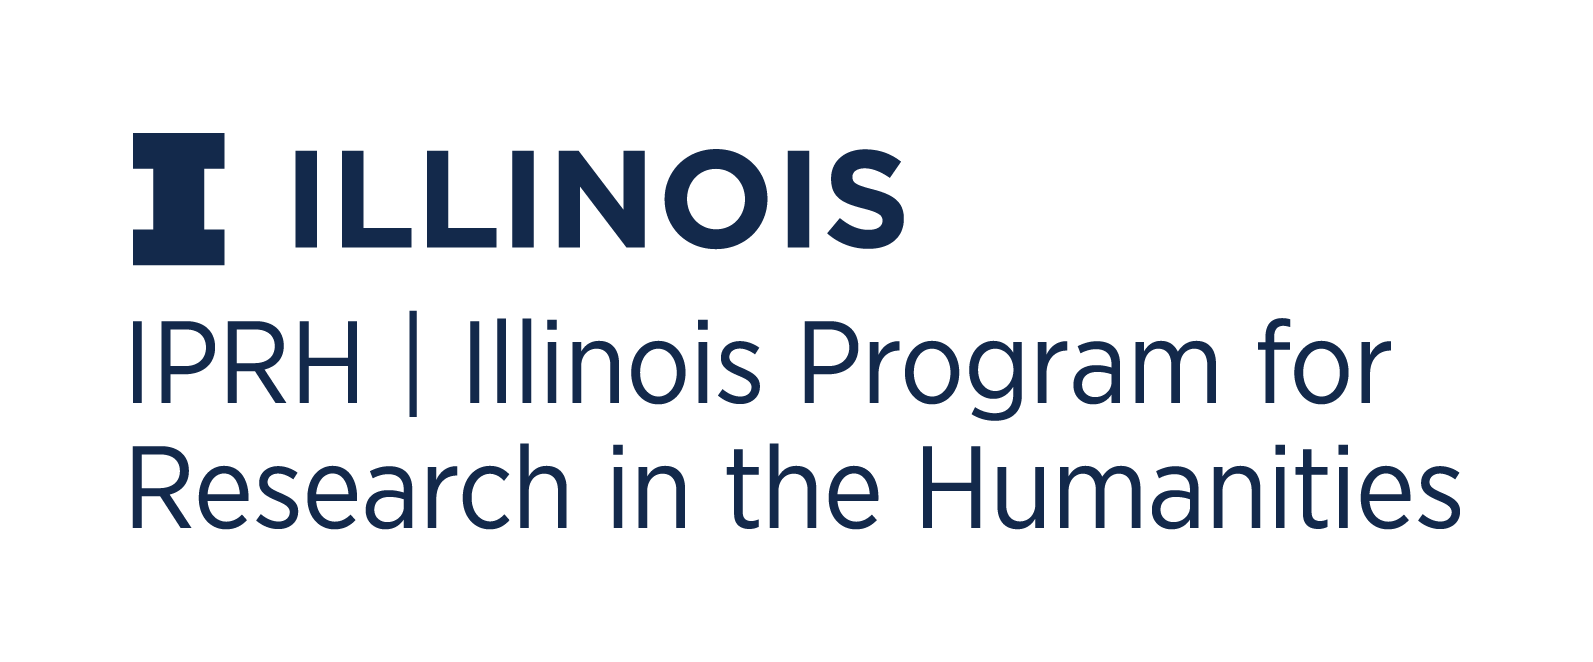 Illinois Program for Research in the Humanities IPRH